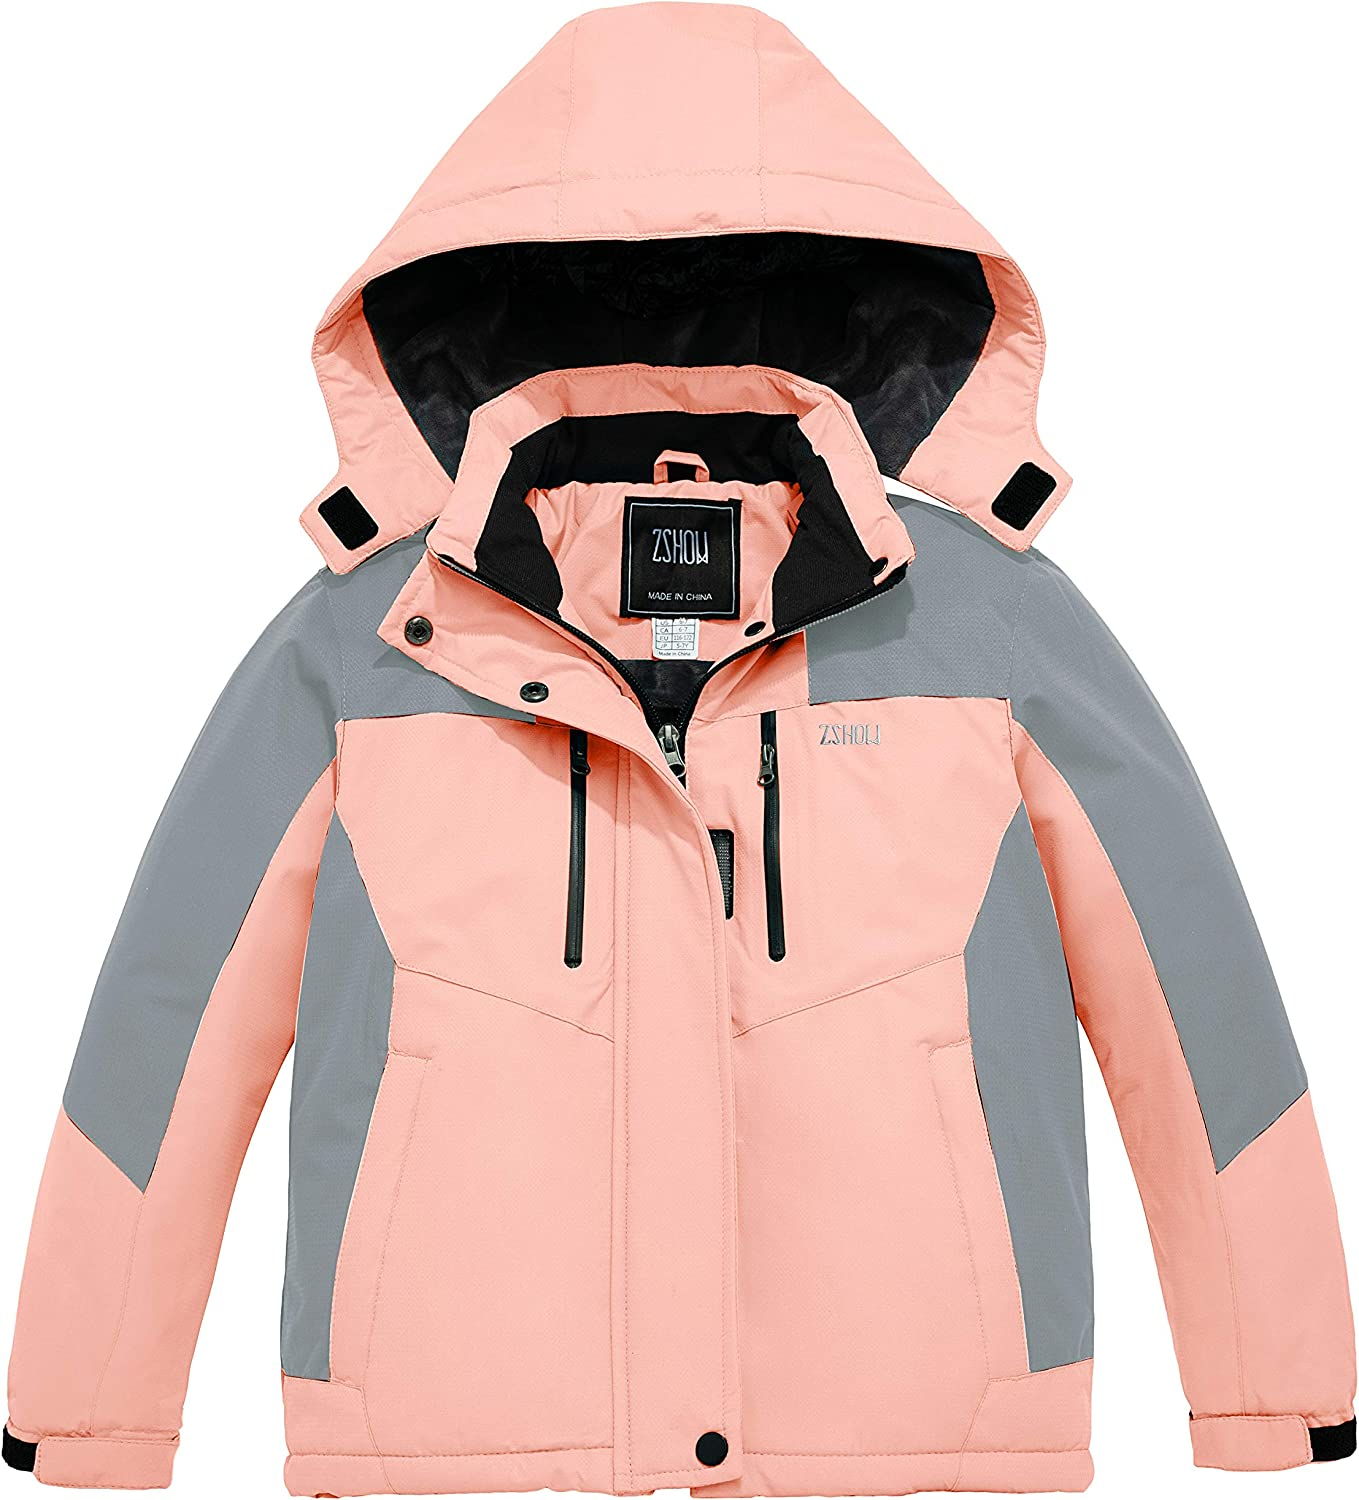 ZSHOW Girls' Waterproof Ski Jacket Warm Winter Snow Coat Fleece Raincoats